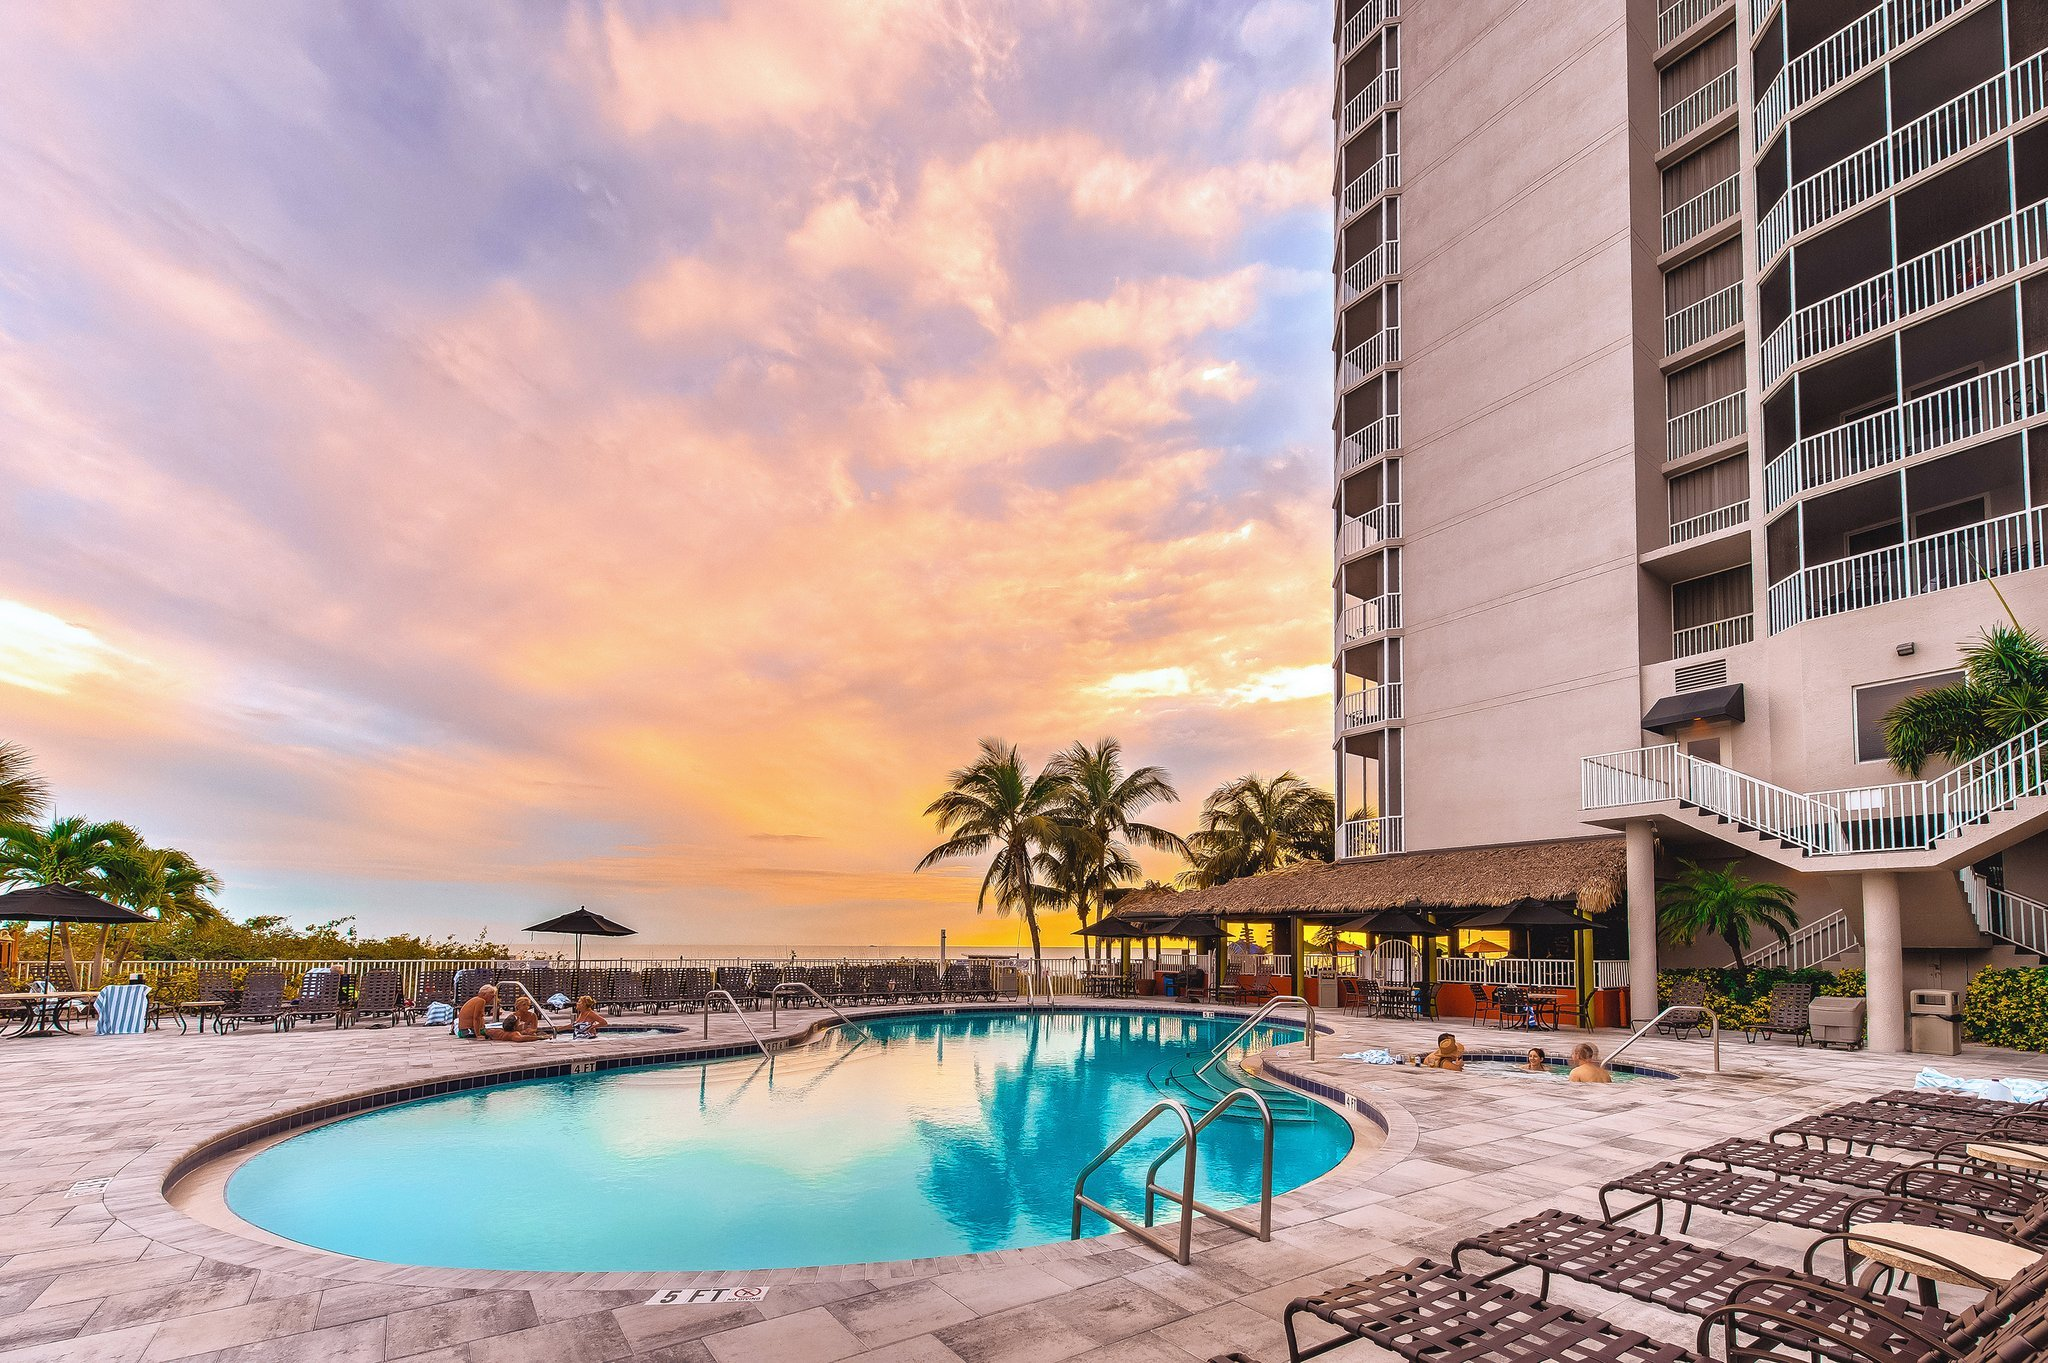 DiamondHead Beach Resort & Spa